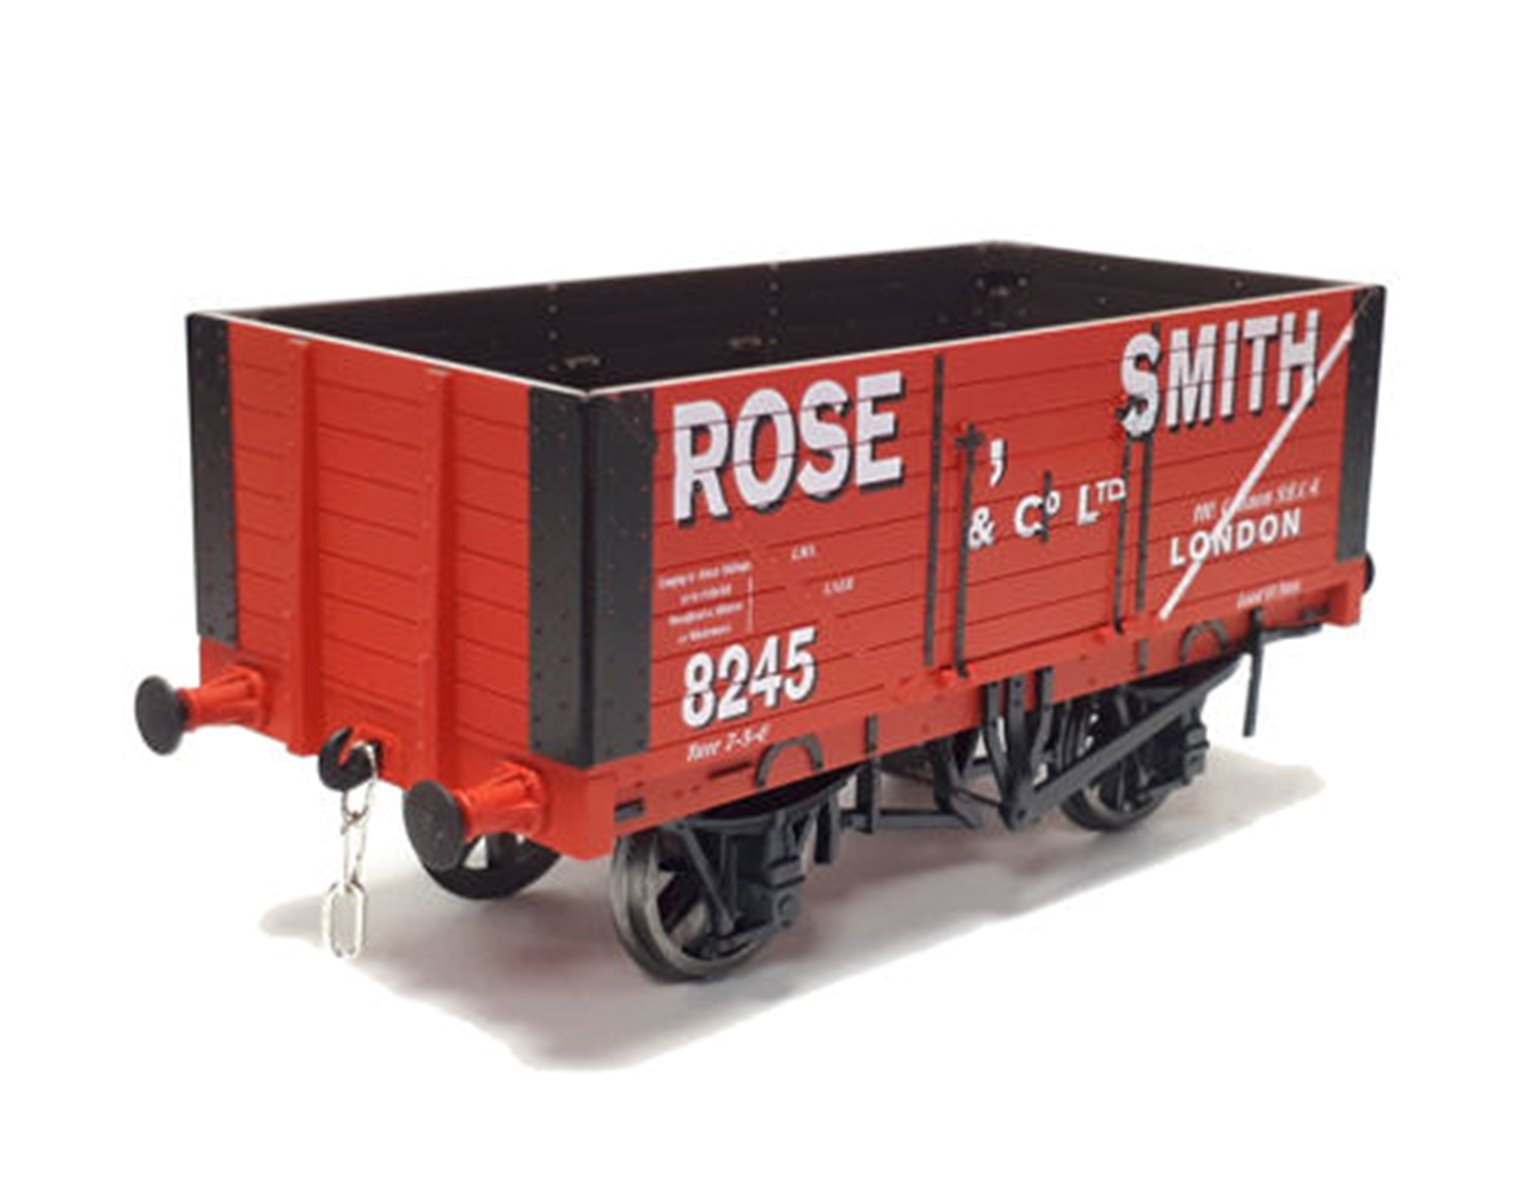 8 Plank Wagon Rose Smith 8245